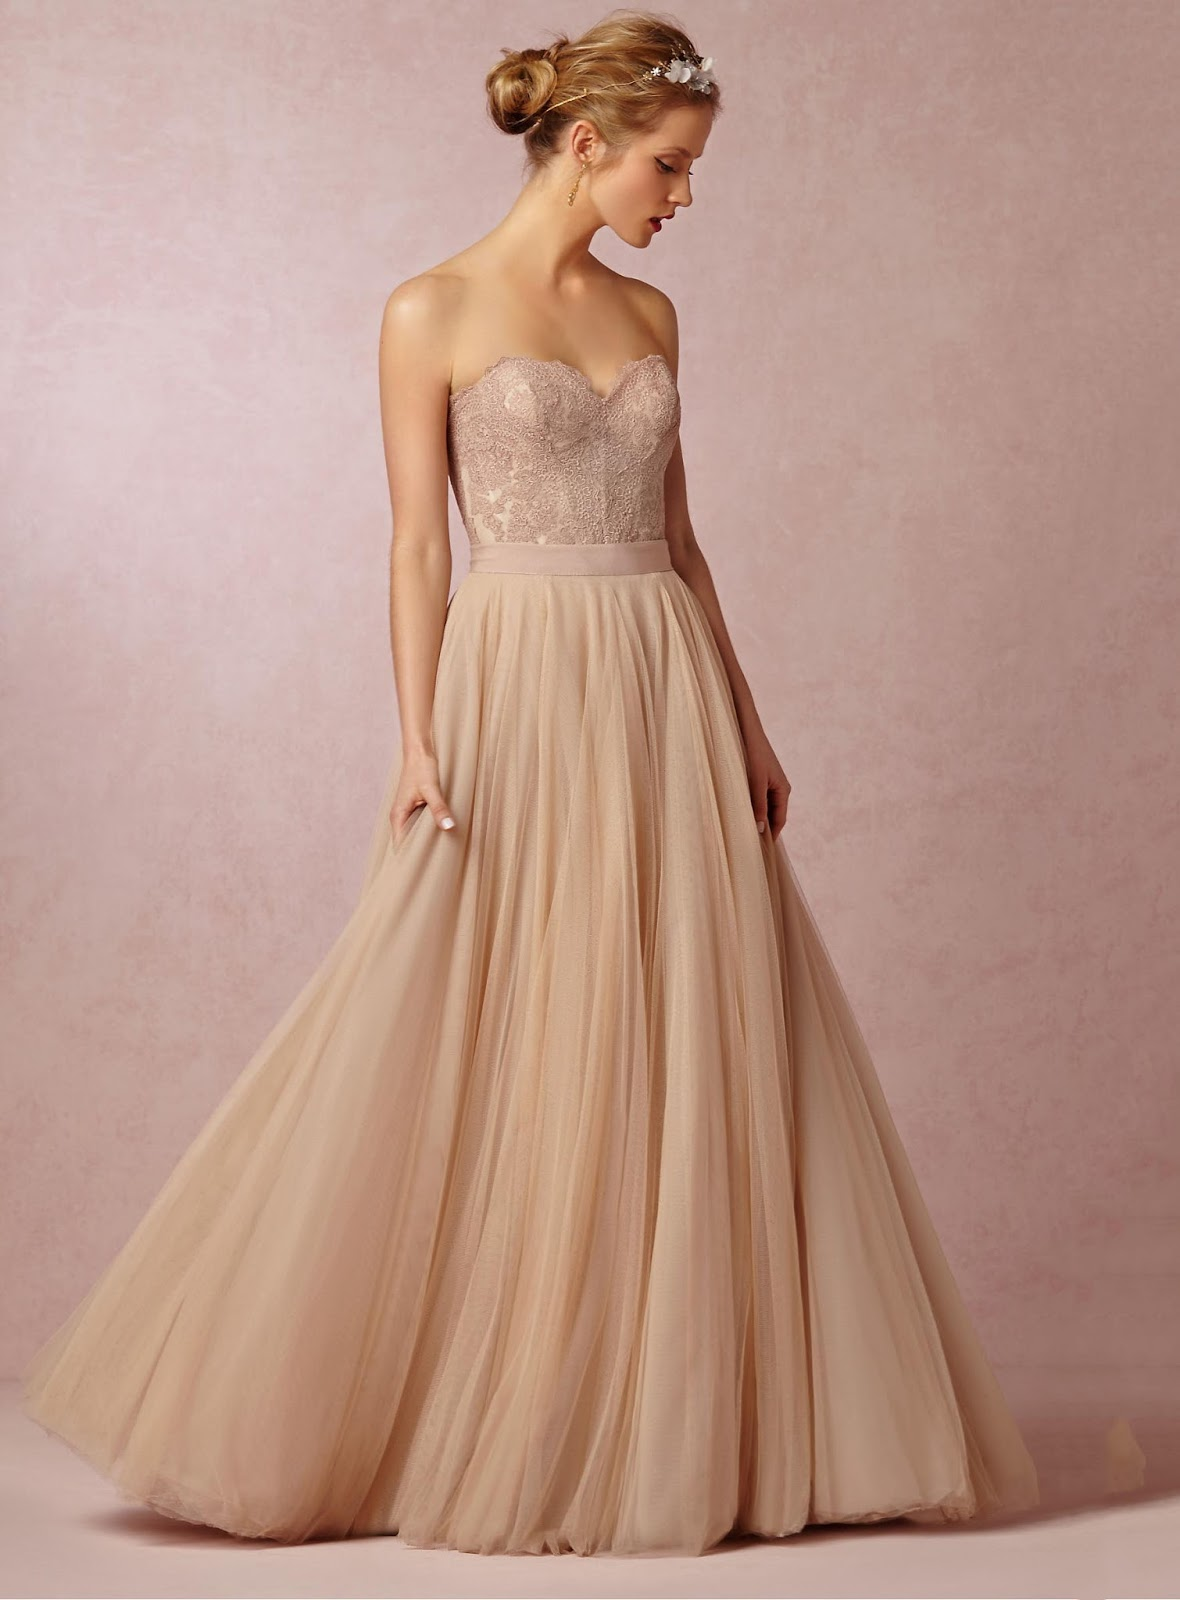 Vogue Simple/Charming A-Line Floor-Length Sweetheart Tulle Wedding Dress With Lace Ripon